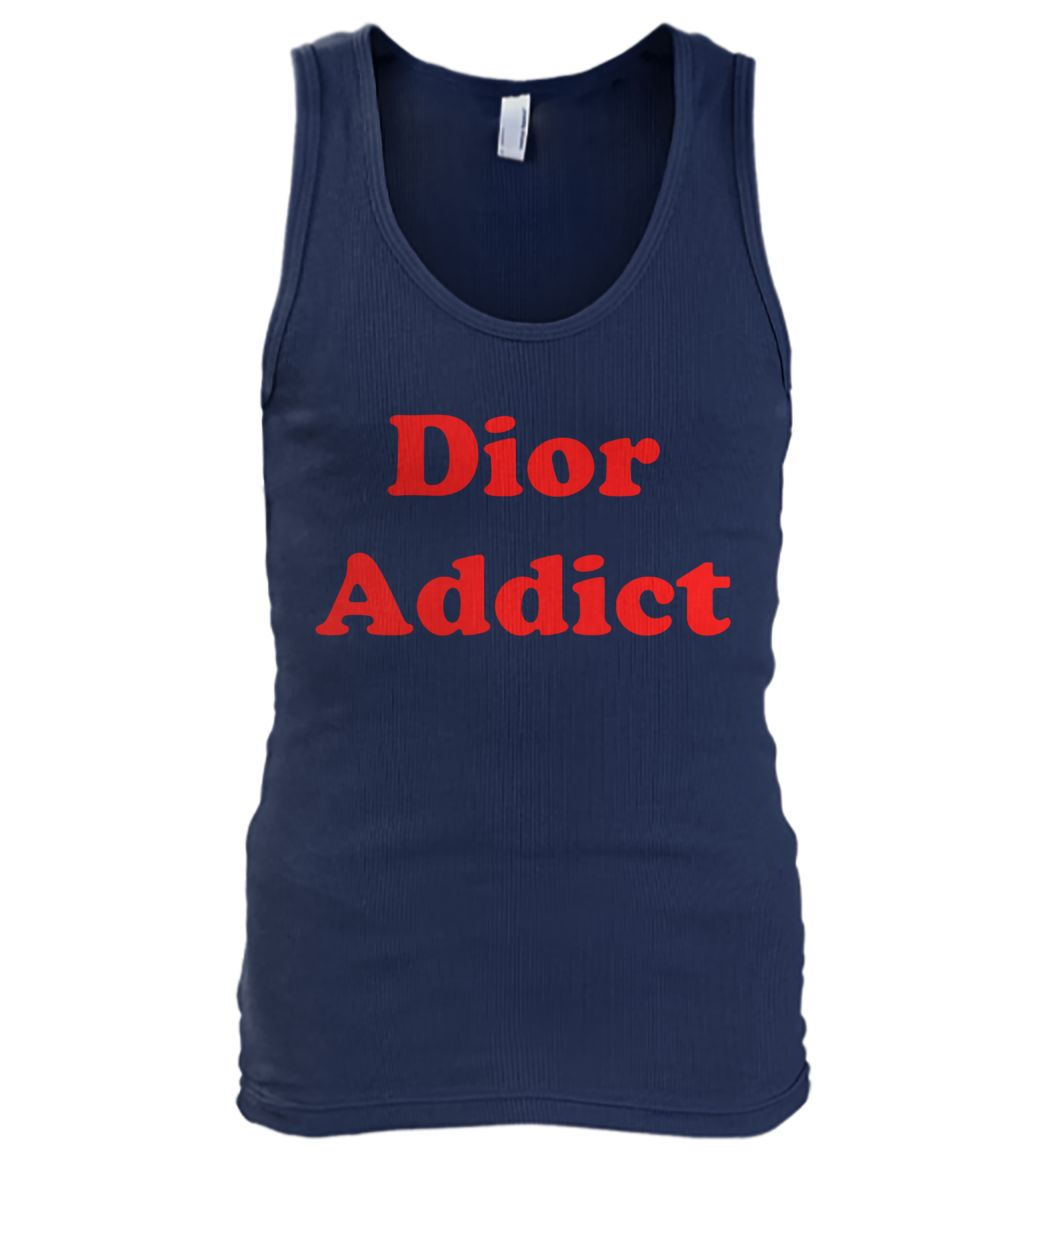 Dior addict kendall jenner shirt and unisex long sleeve